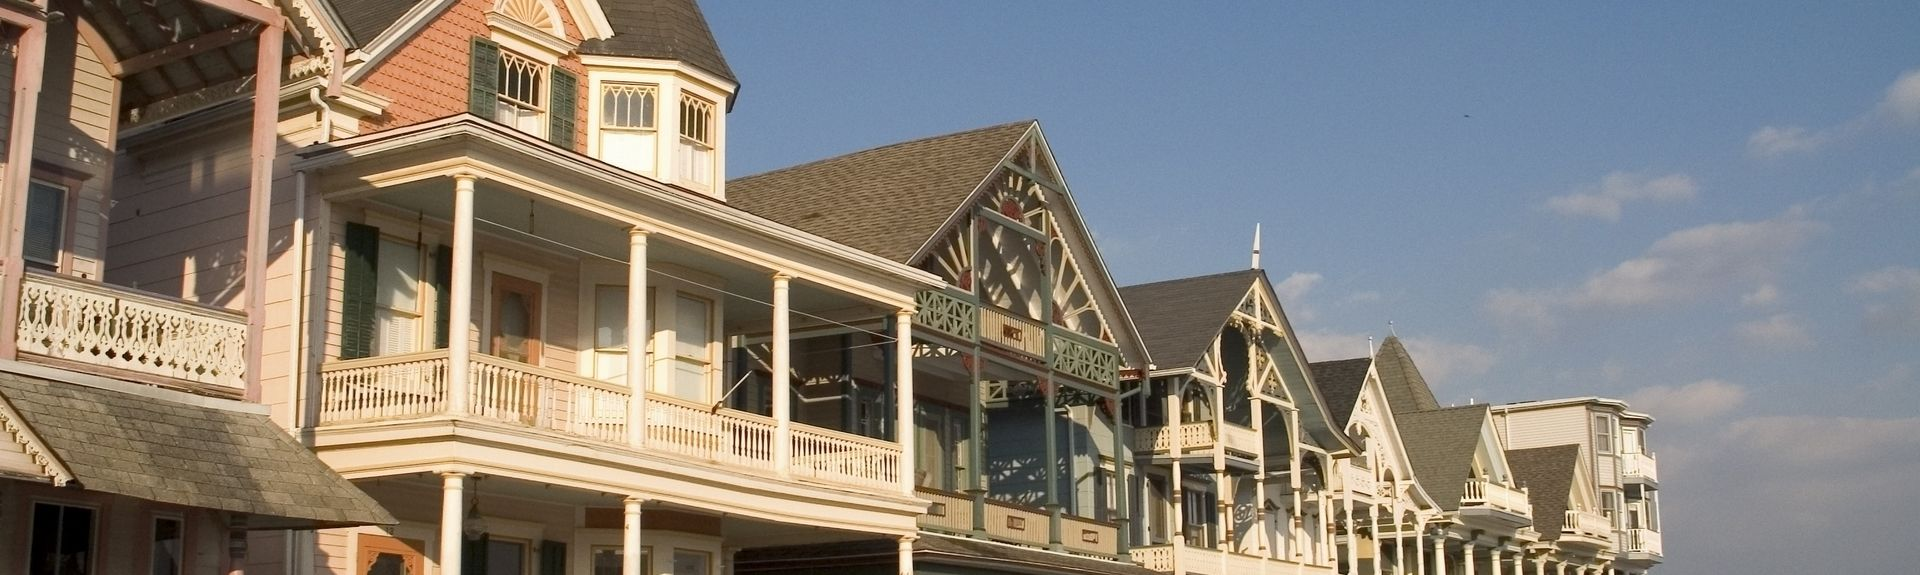 Ocean Grove, New Jersey, Estados Unidos